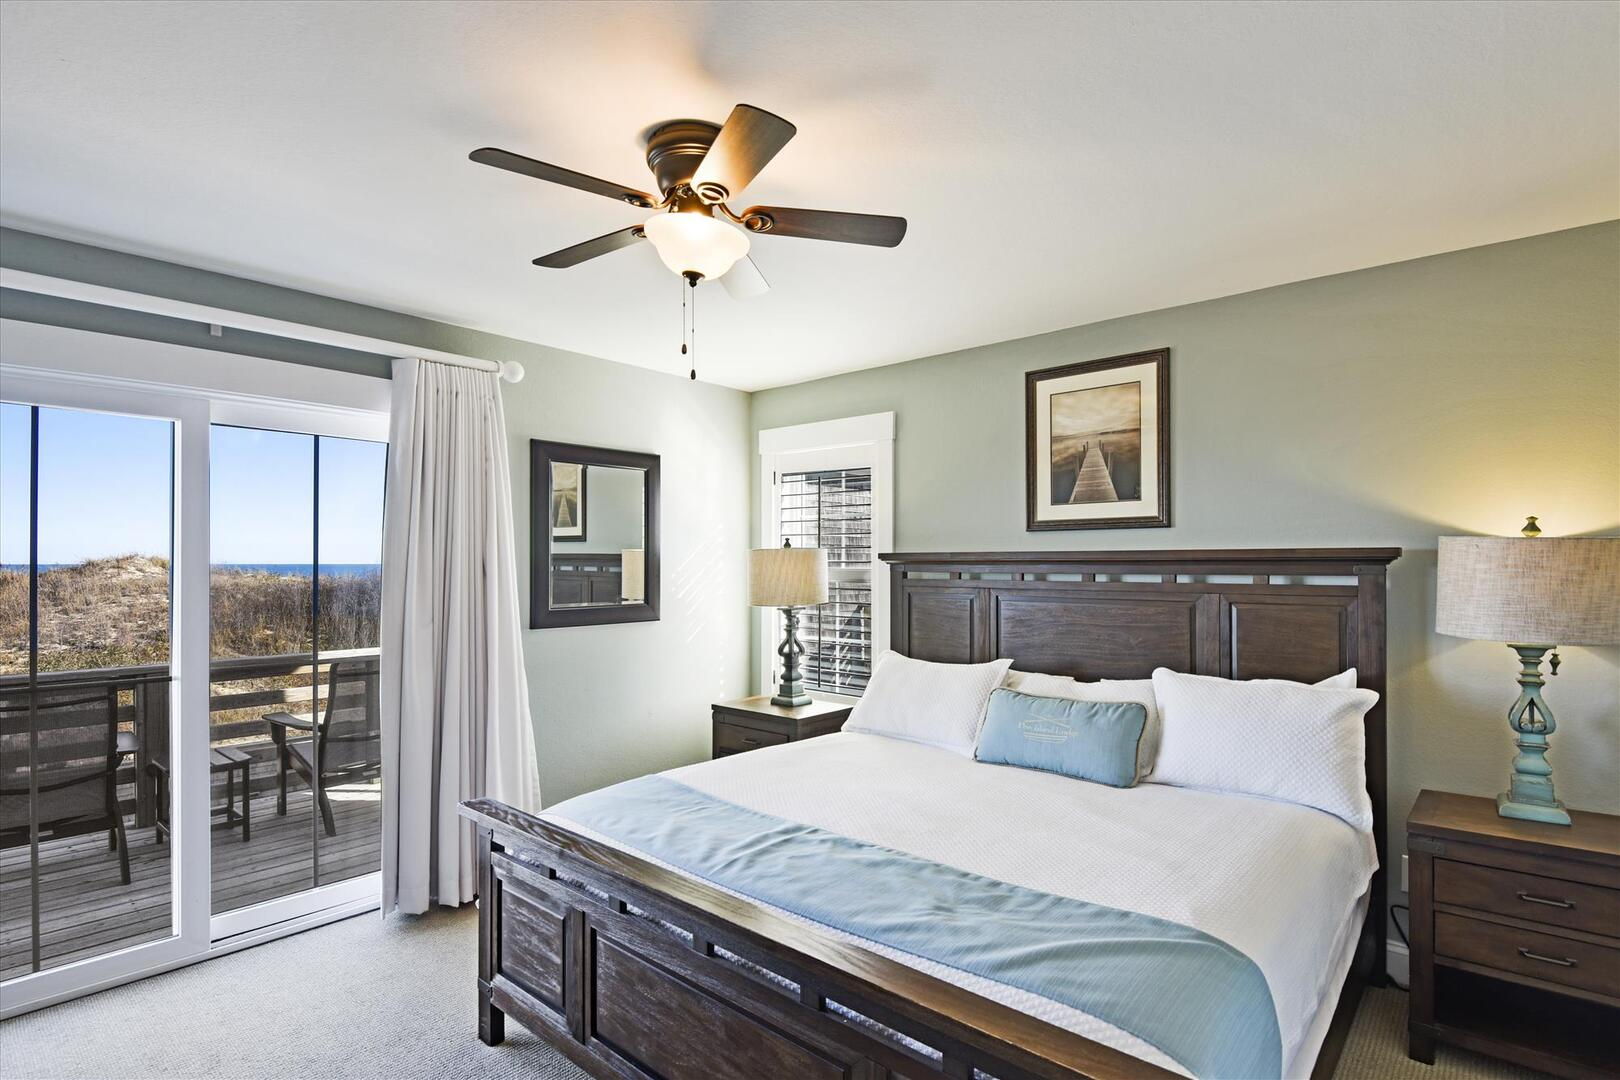 Main Level,Bed room,